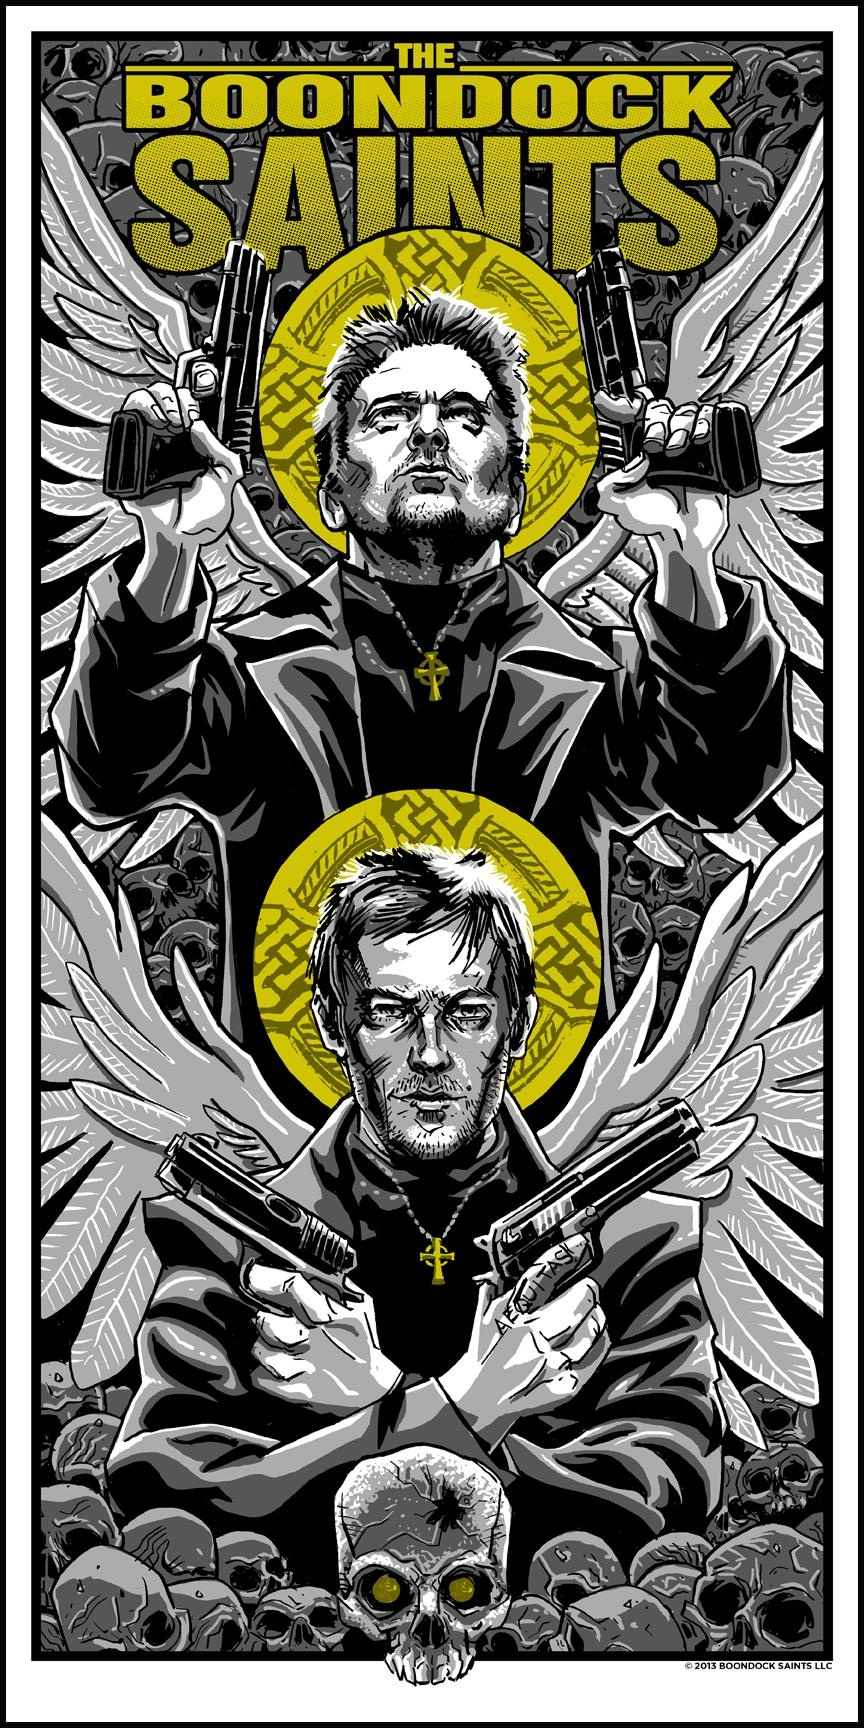 The Boondock Saints | 411Posters Regarding Boondock Saints Wall Art (View 19 of 20)